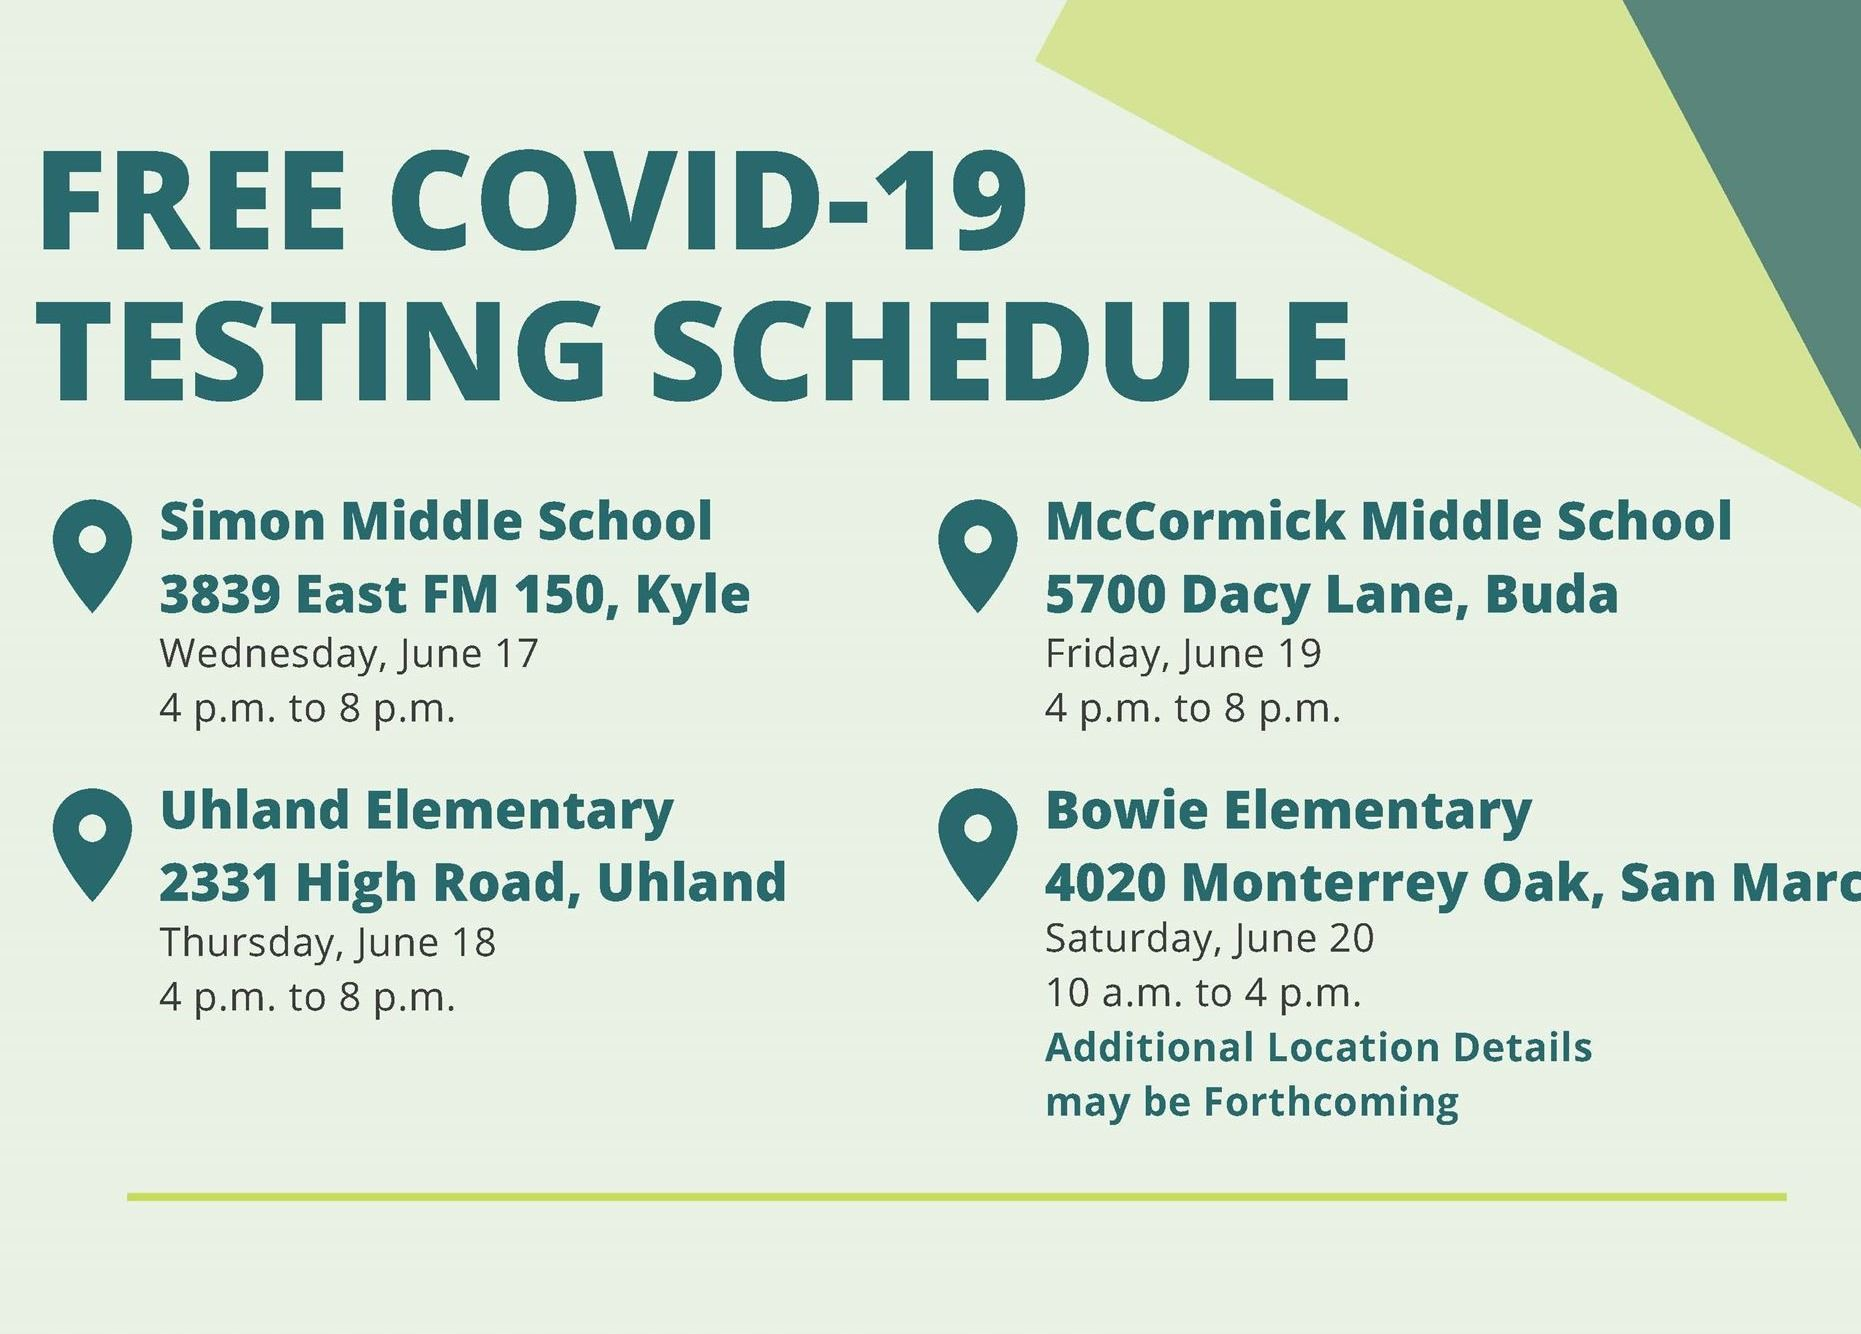 COVID-19 Testing Schedule Final Graphic with location/time details